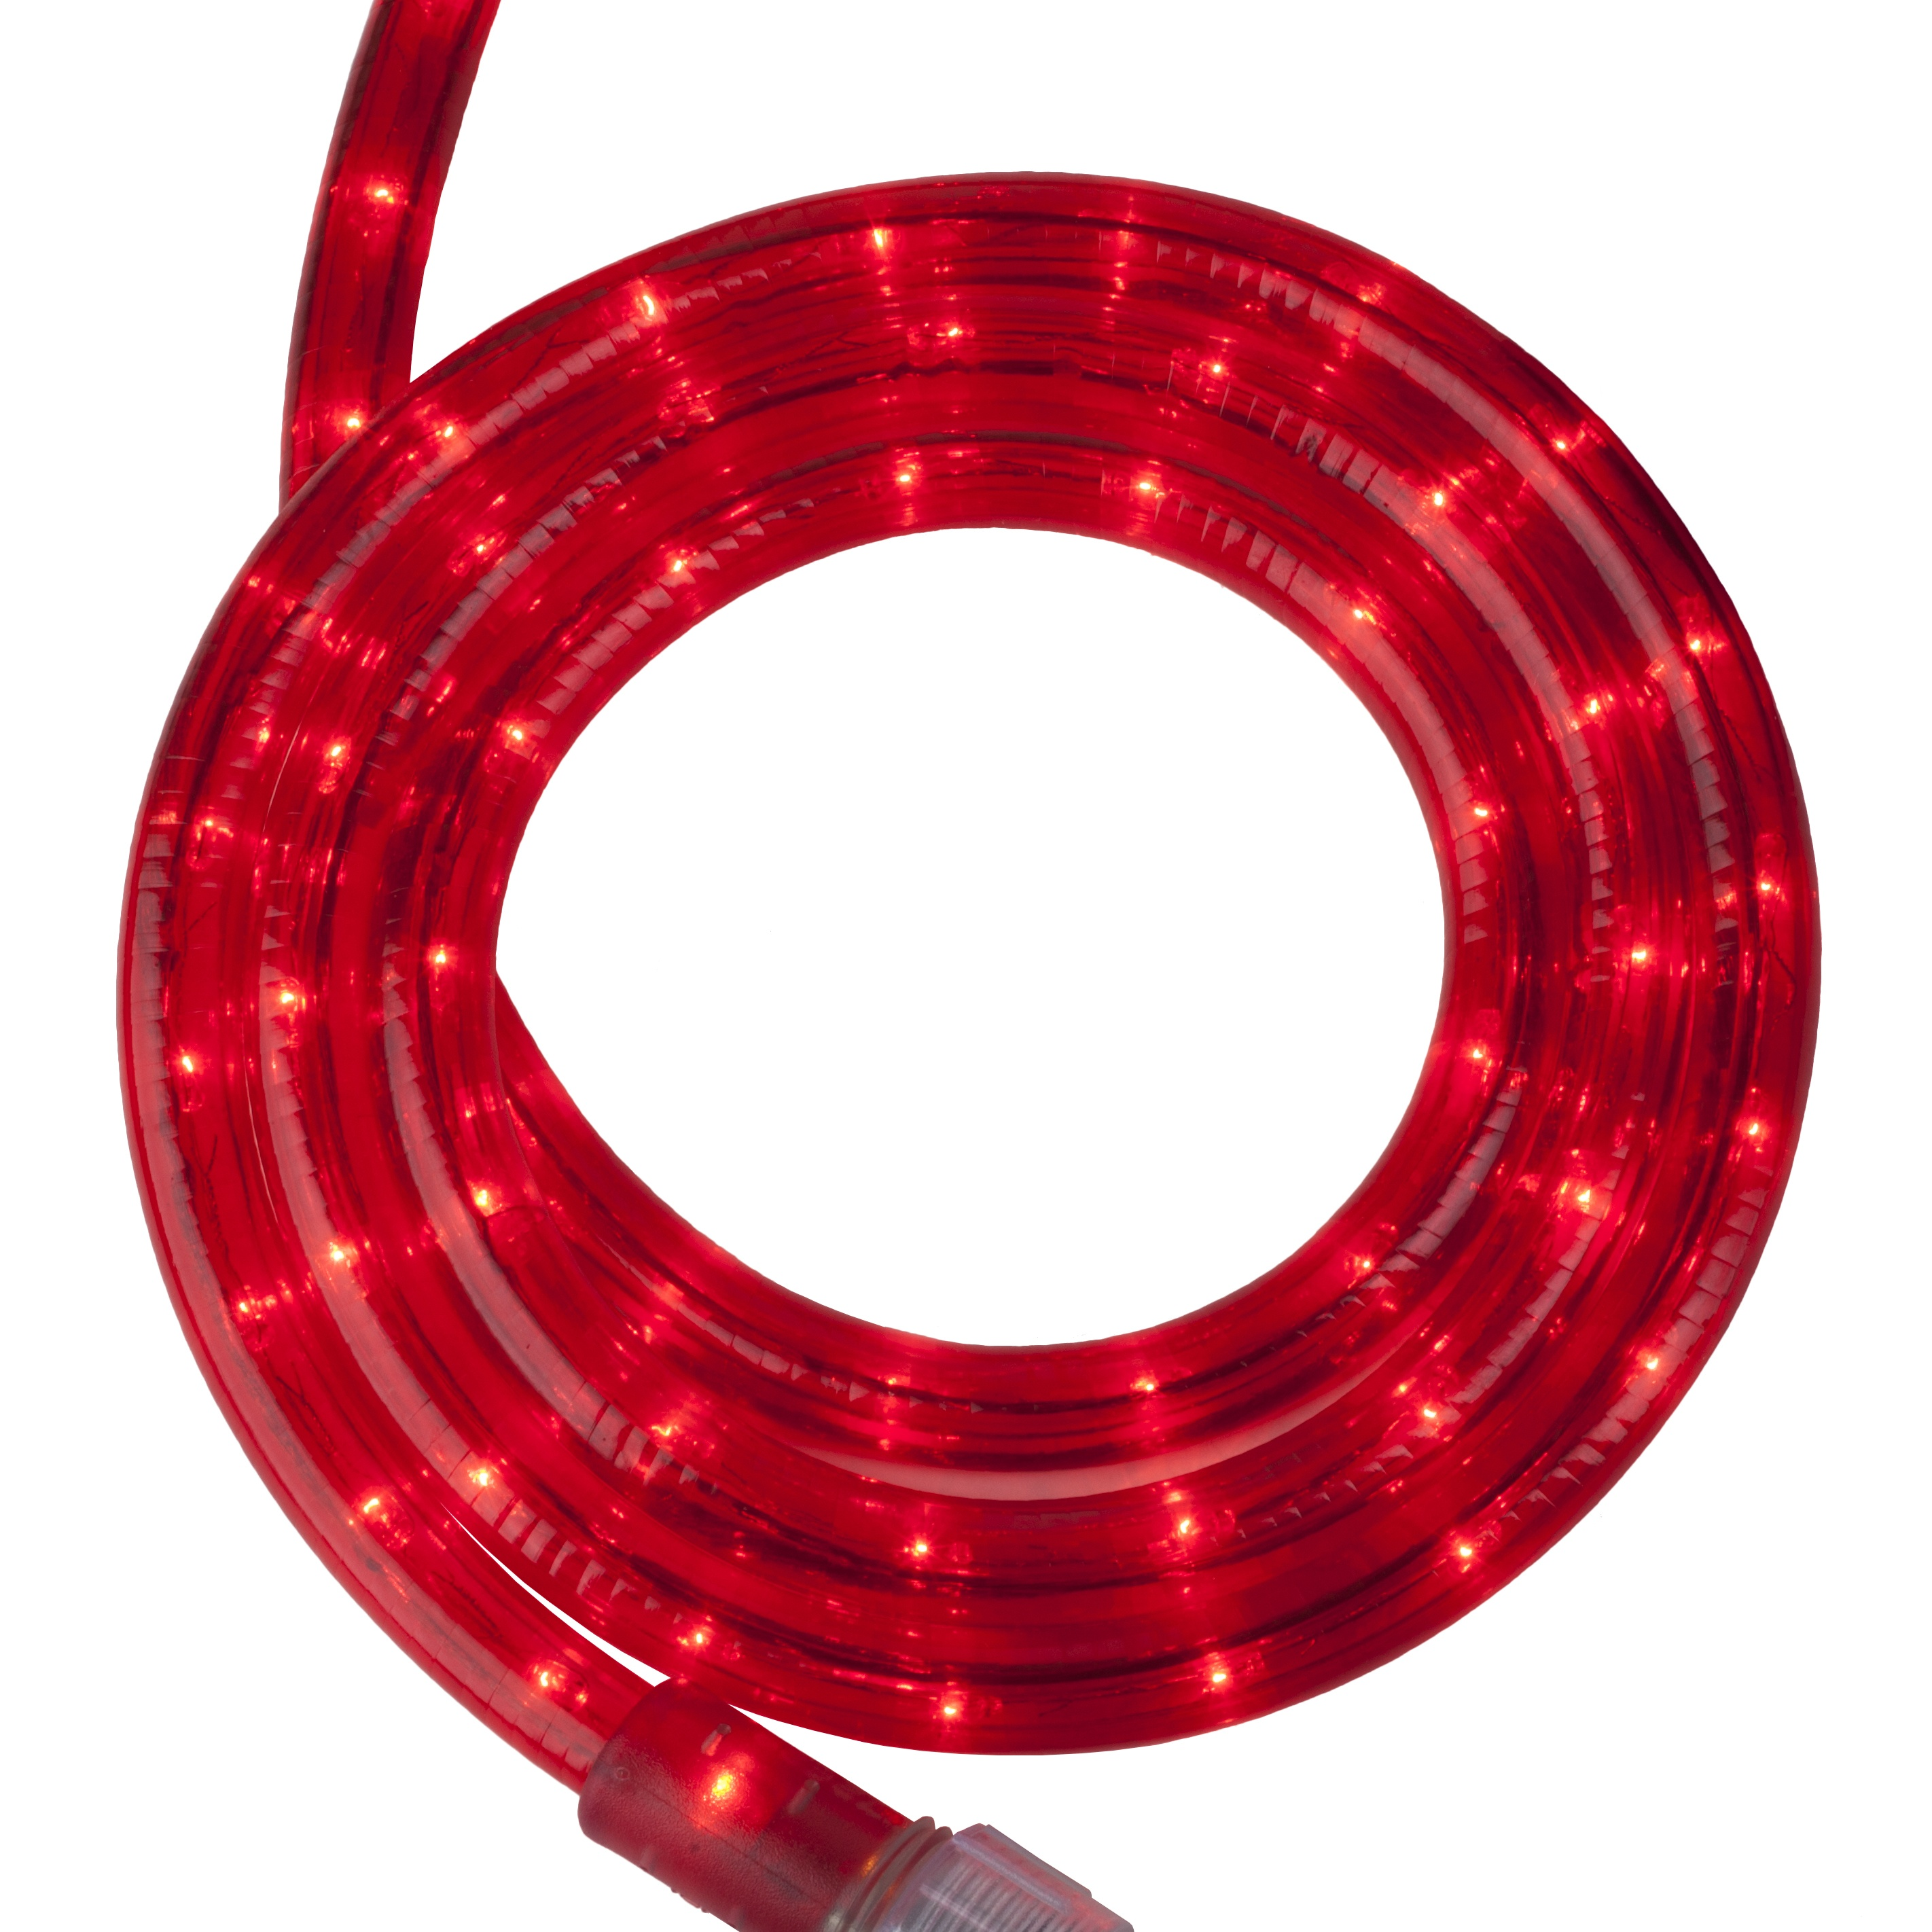 Rope Lighting 30 Red Rope Light 120 Volt